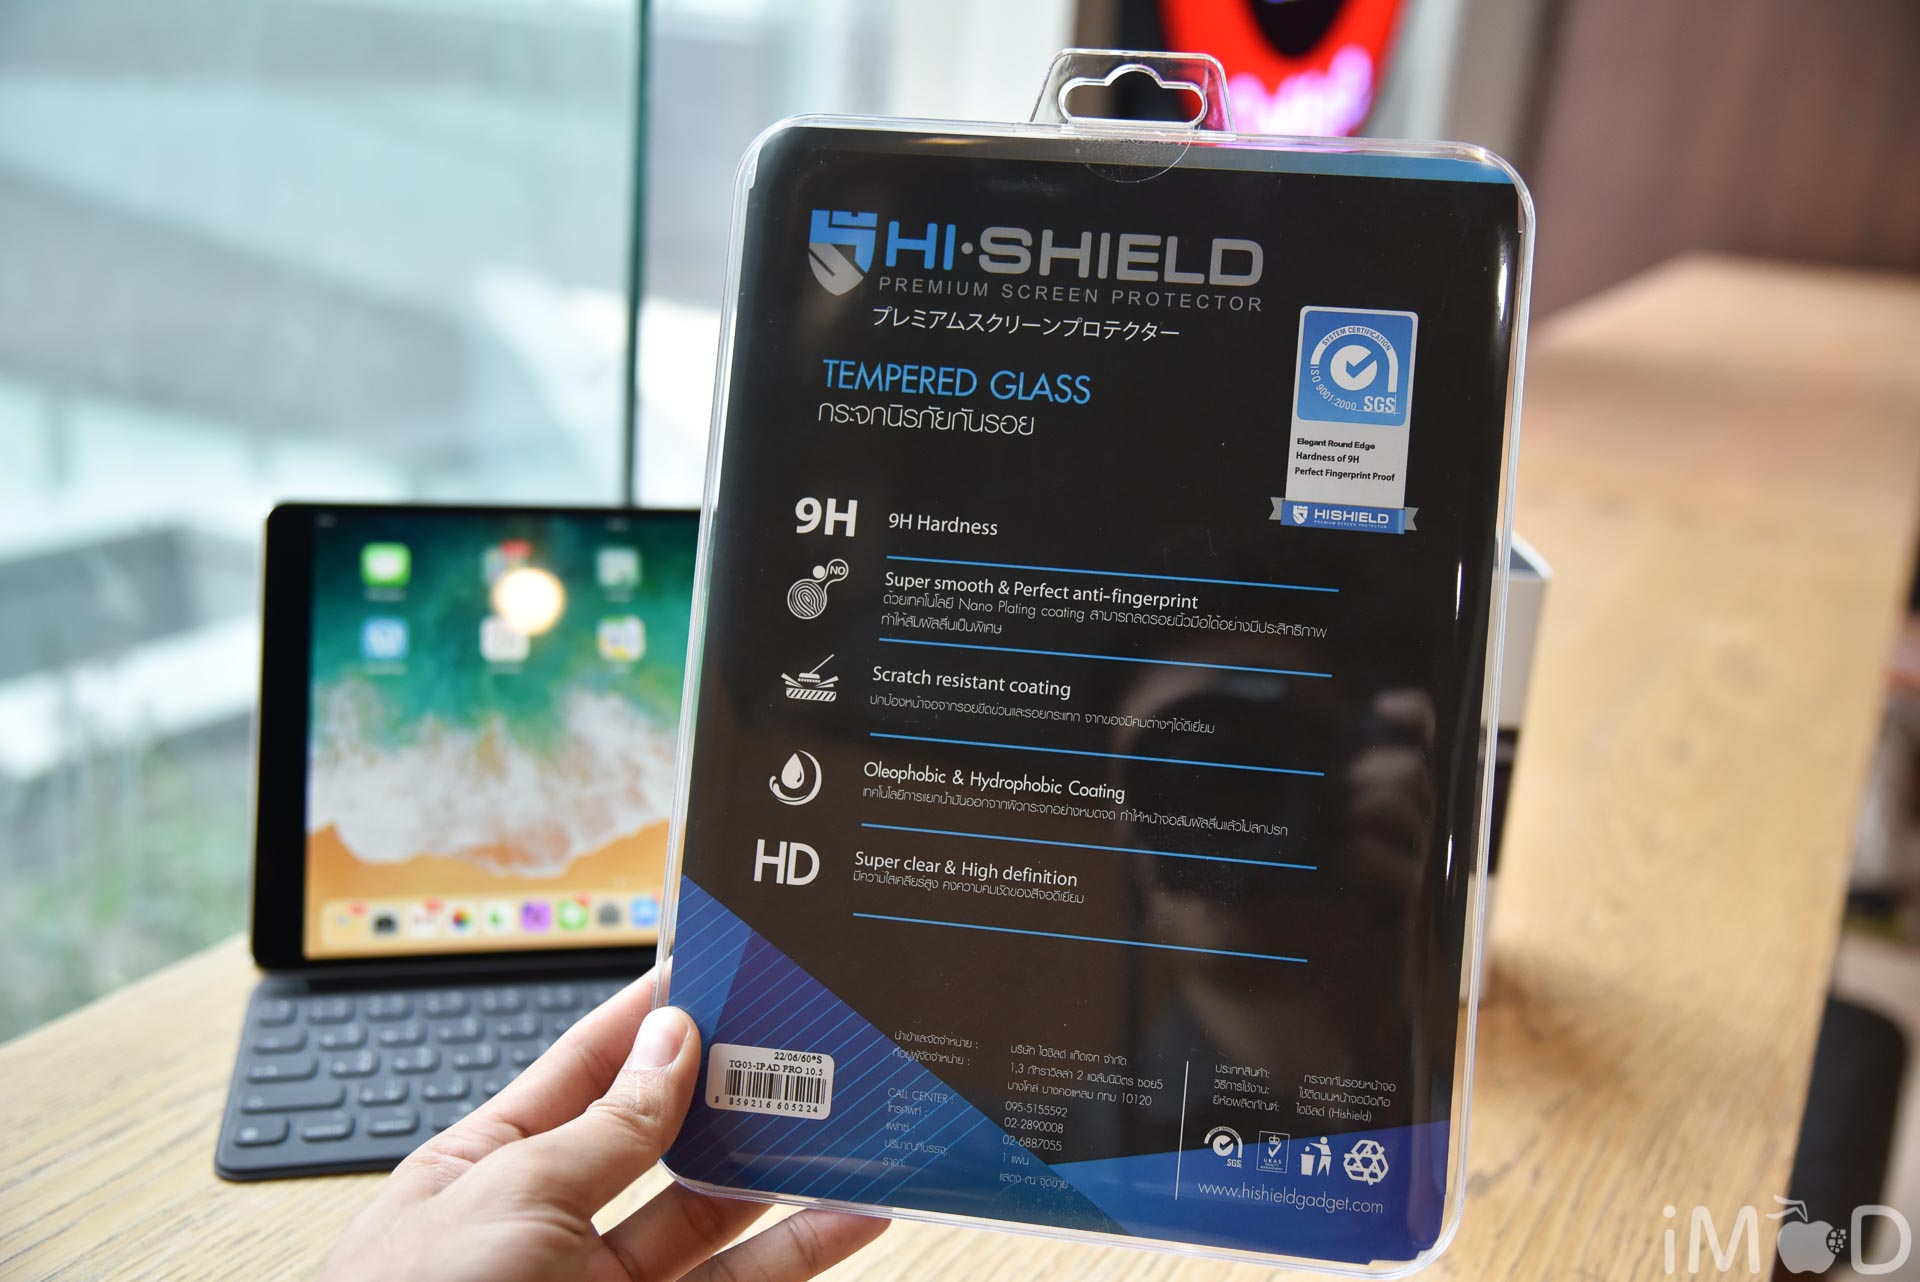 Hi Shield Ipad Pro 105 Inch Review 3008